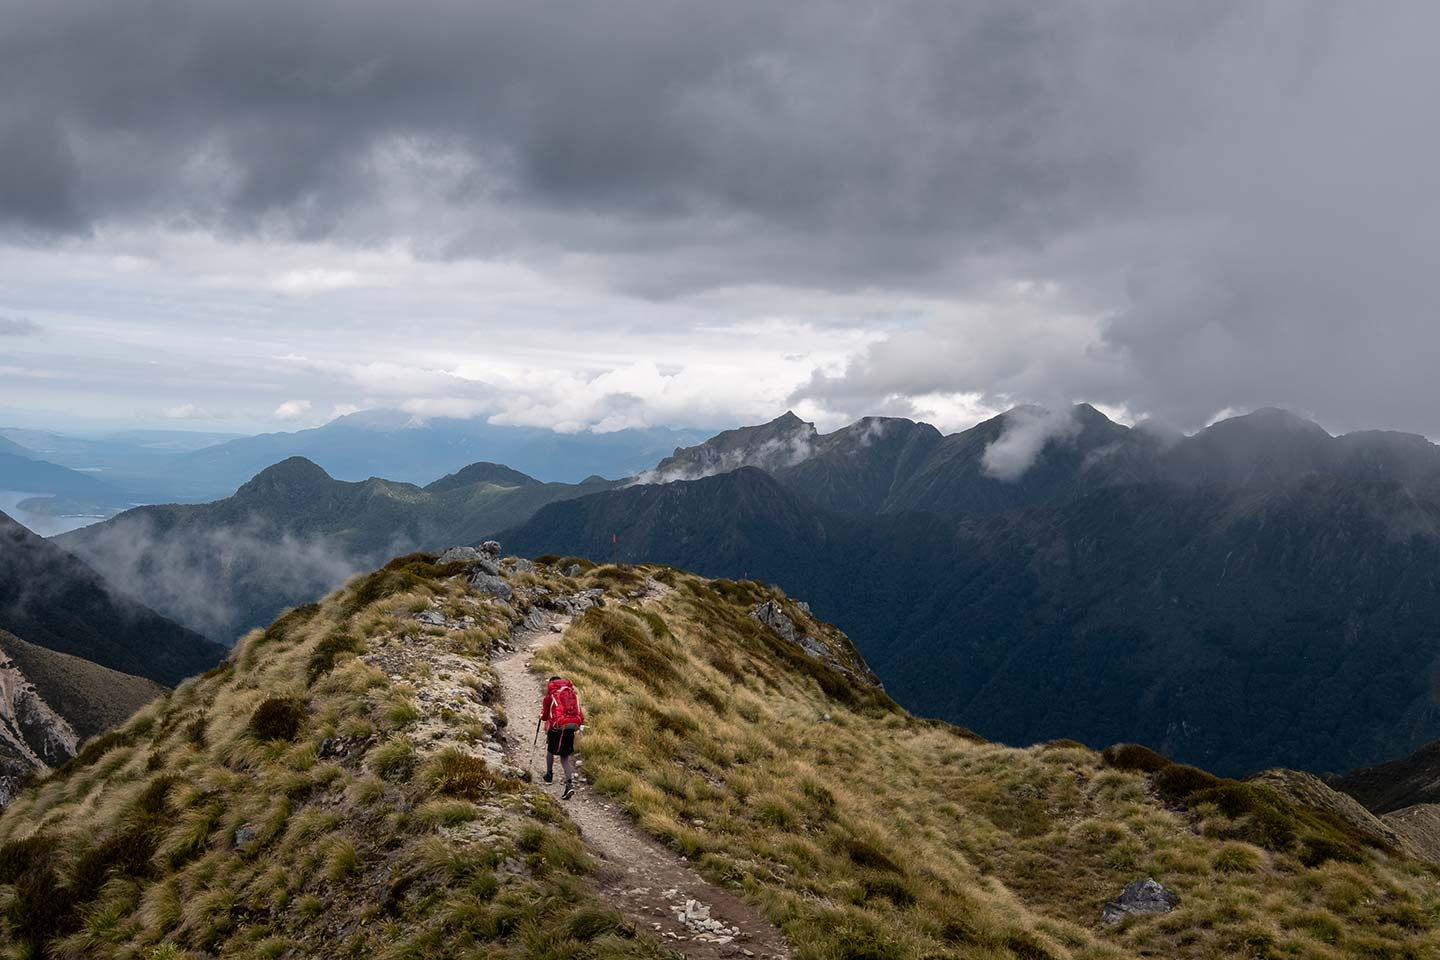 A woman walks along a tussock covered ridge line on the Kepler Track. Ahead of her are dramatic looking clouds covering mountains.